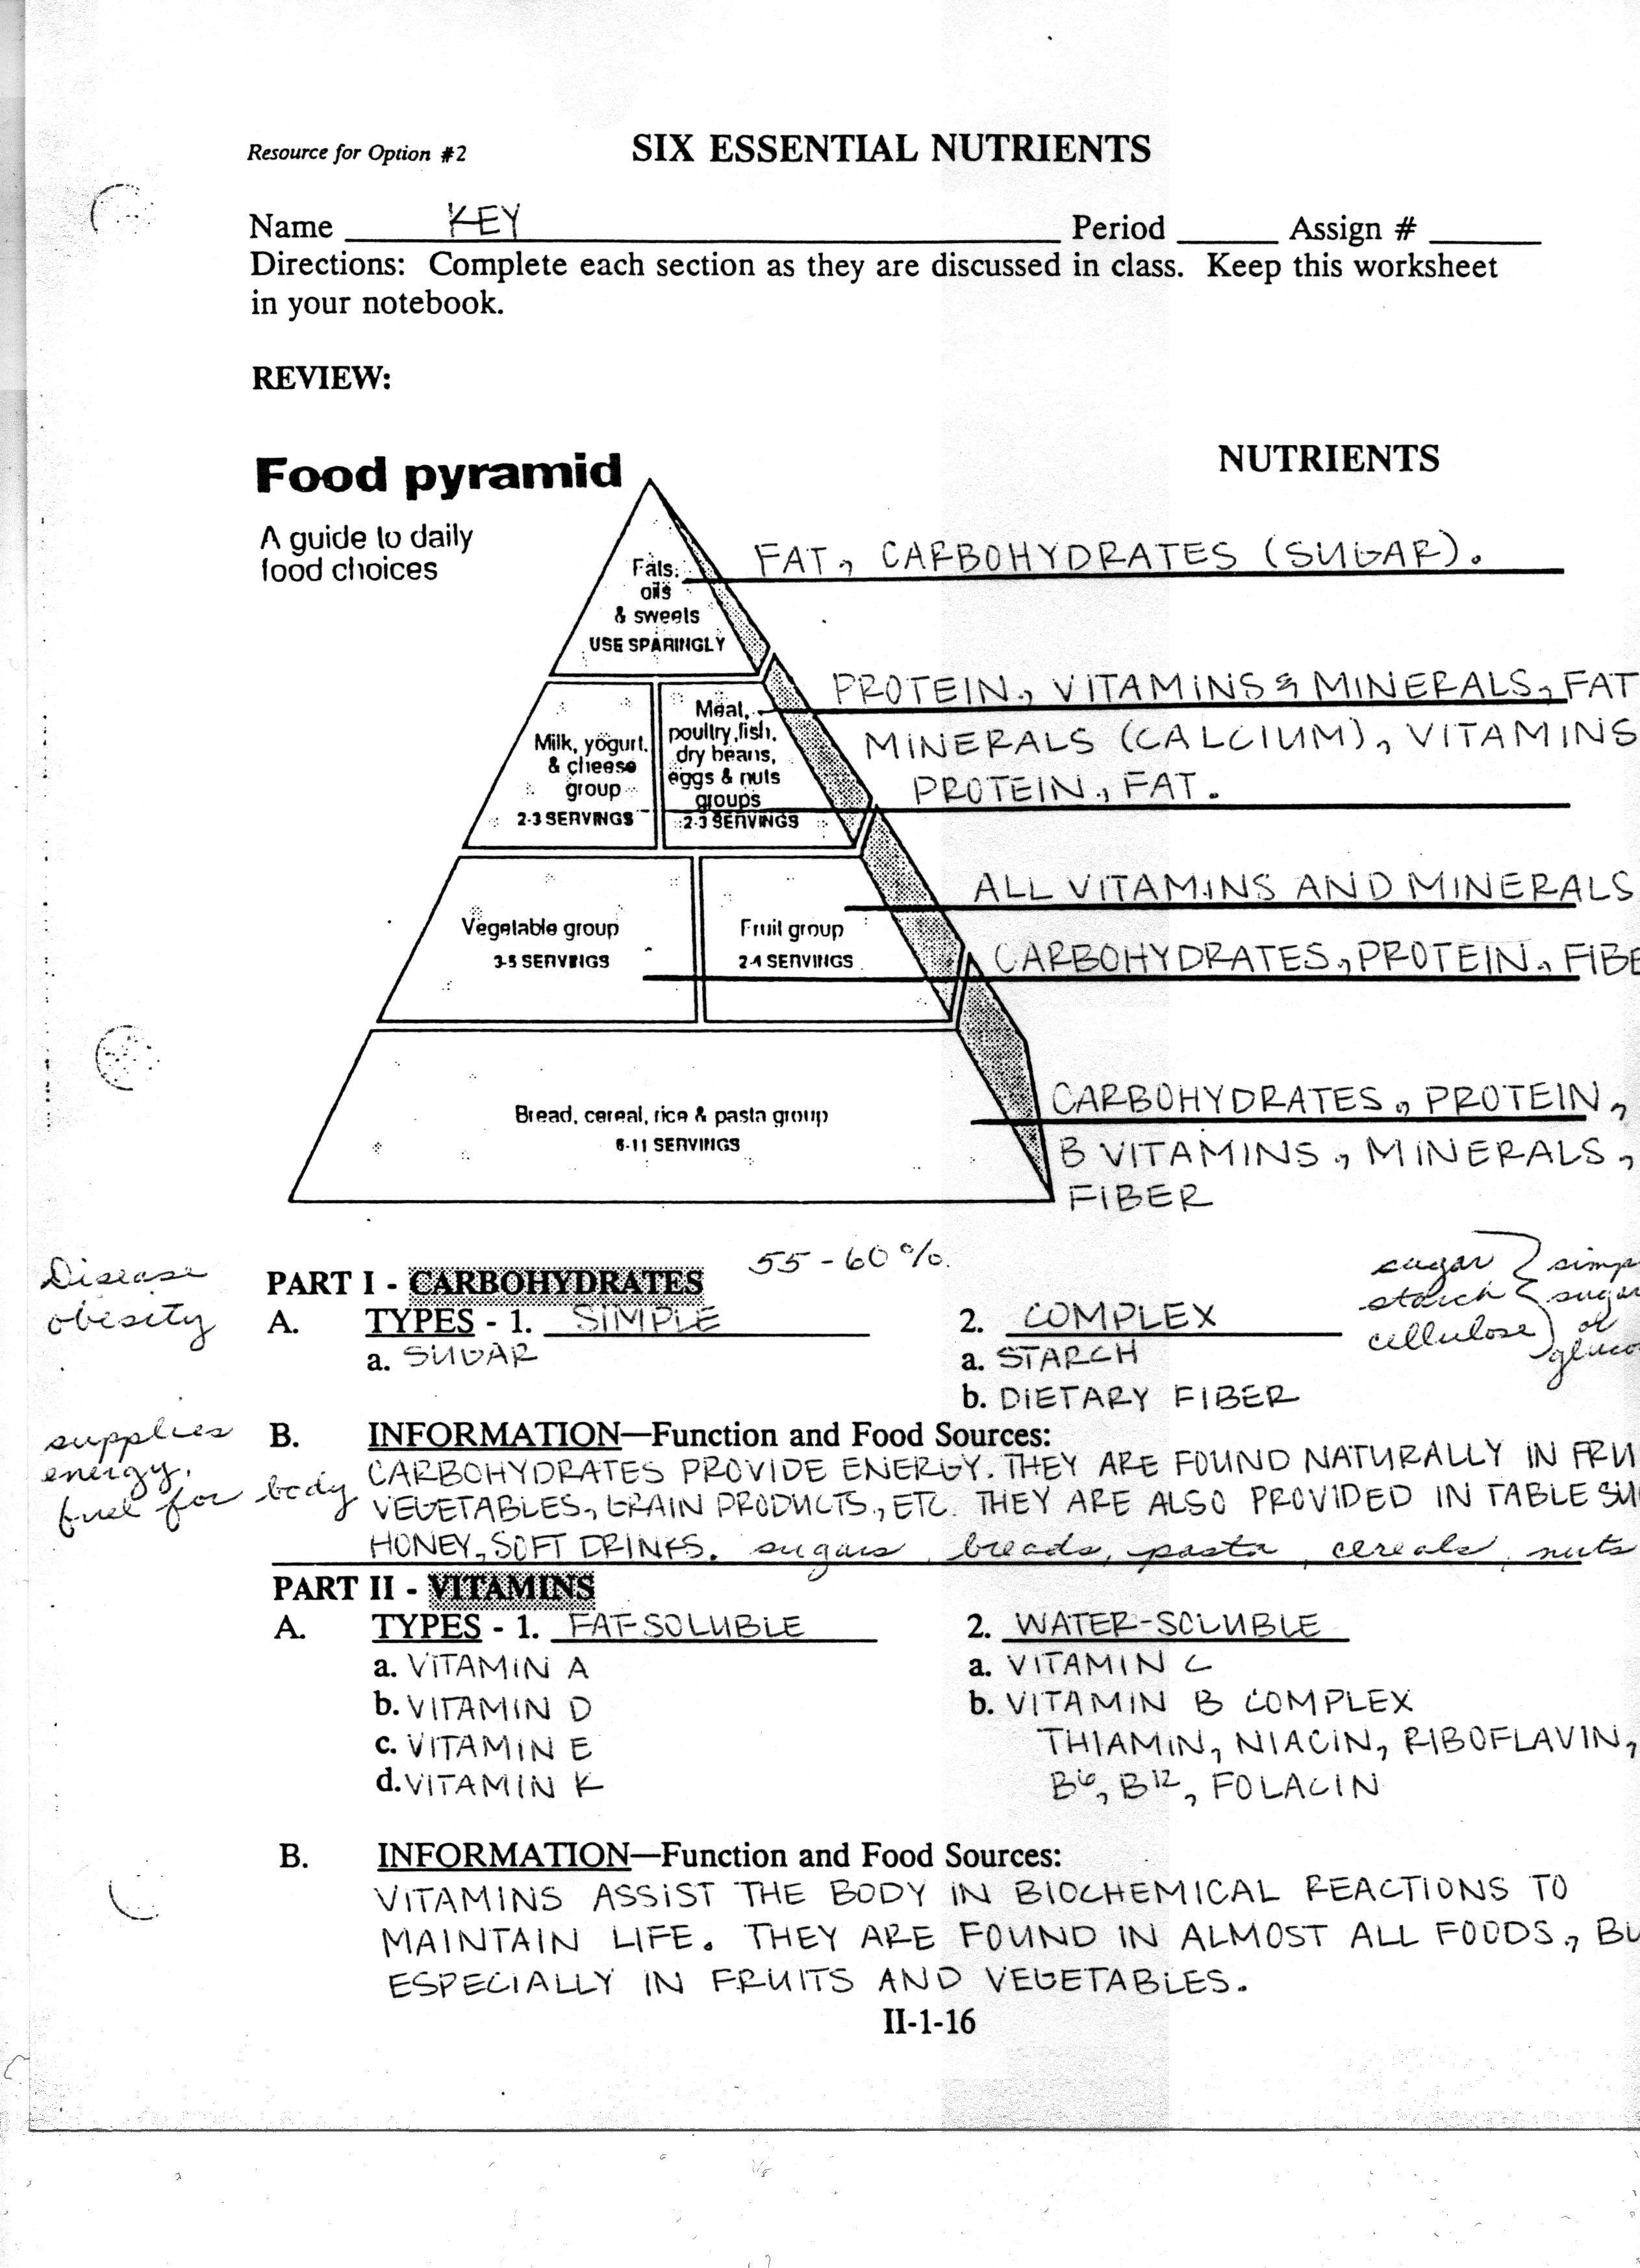 easy worksheet on food pyramid. Black Bedroom Furniture Sets. Home Design Ideas